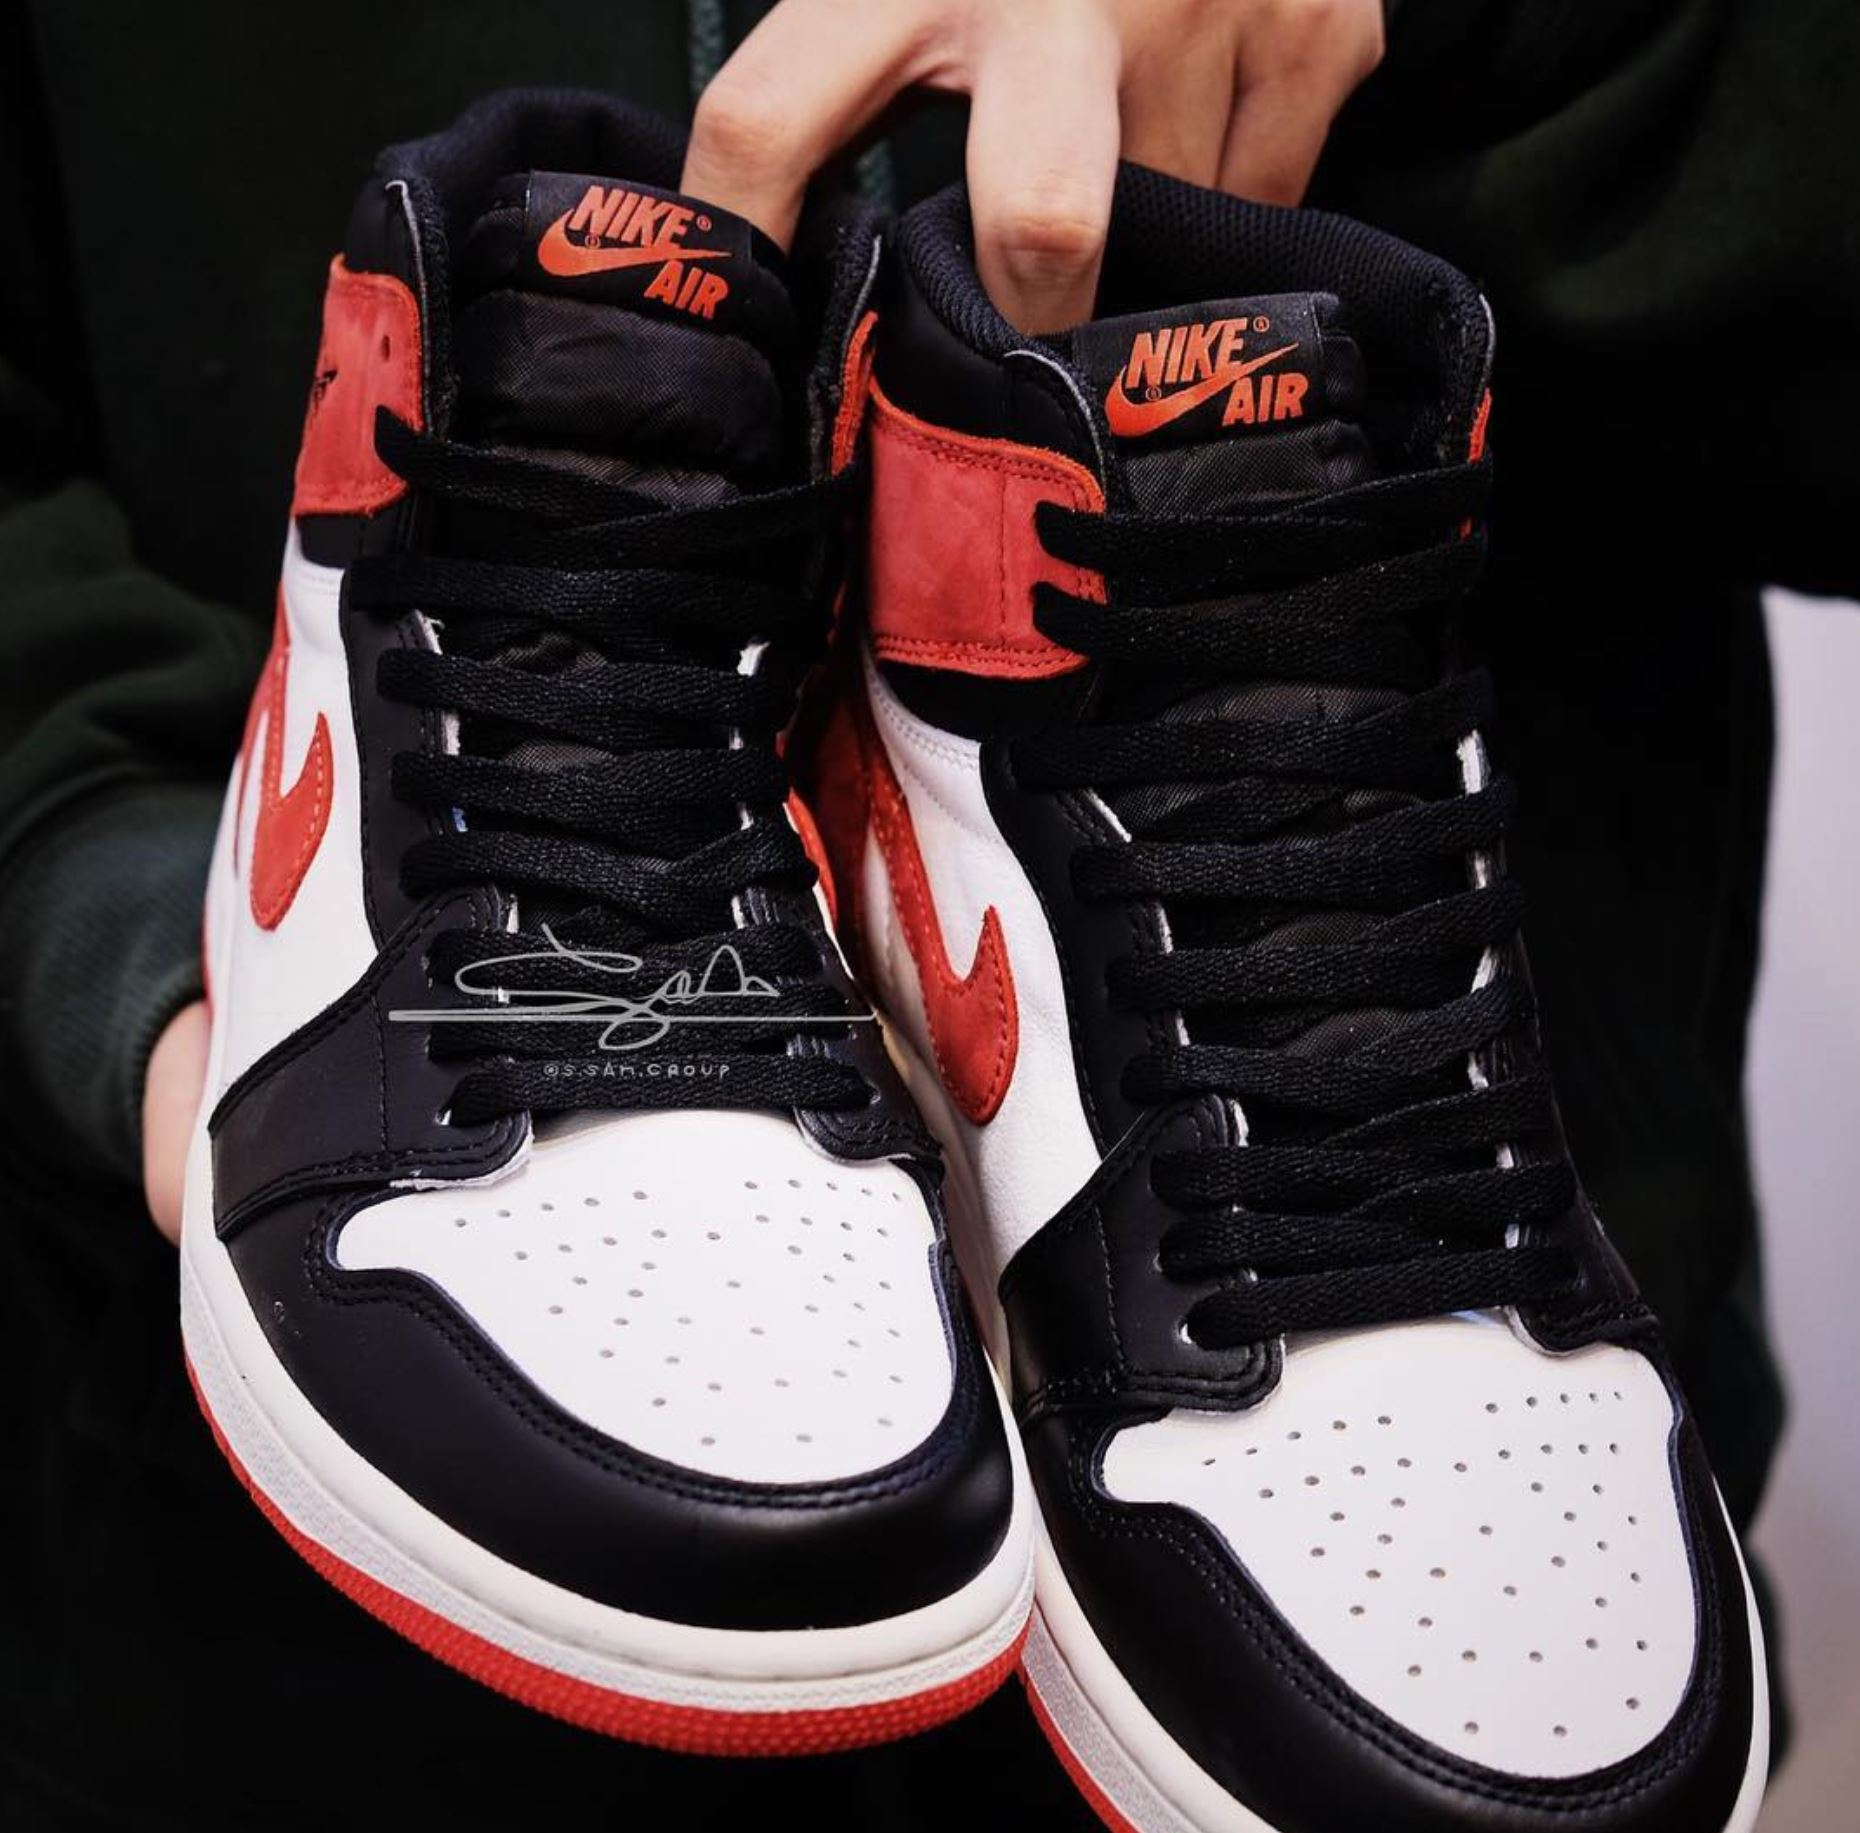 outlet store c43a7 56782 The Air Jordan 1 '6 Rings' Flaunts Suede Accents - WearTesters